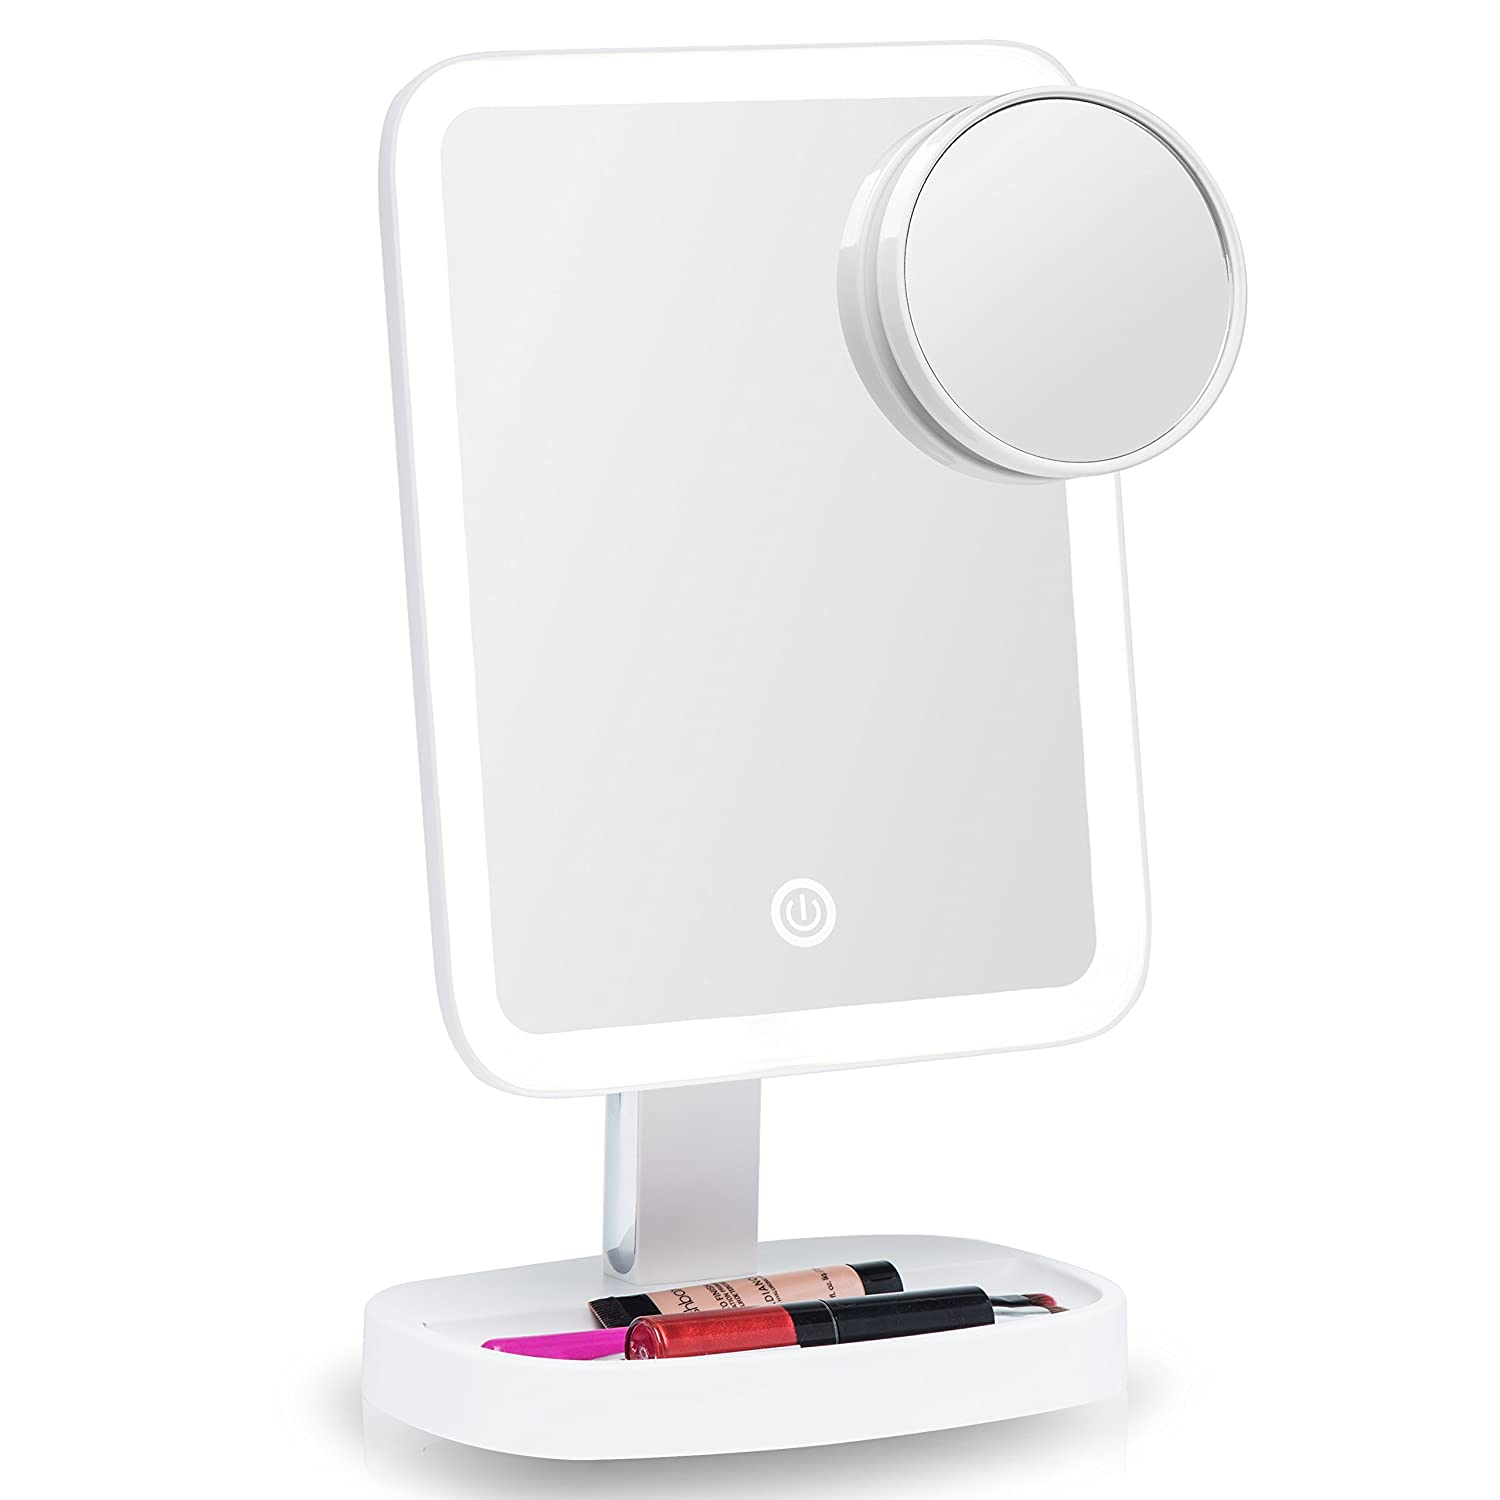 Fancii LED Makeup Vanity Mirror with 3 Light Settings and 15x Magnifying Mirror - Choose between Soft Warm, Natural Daylight, or Neutral White Lights - Dimmable Countertop Cosmetic Mirror FC-VTCM115X